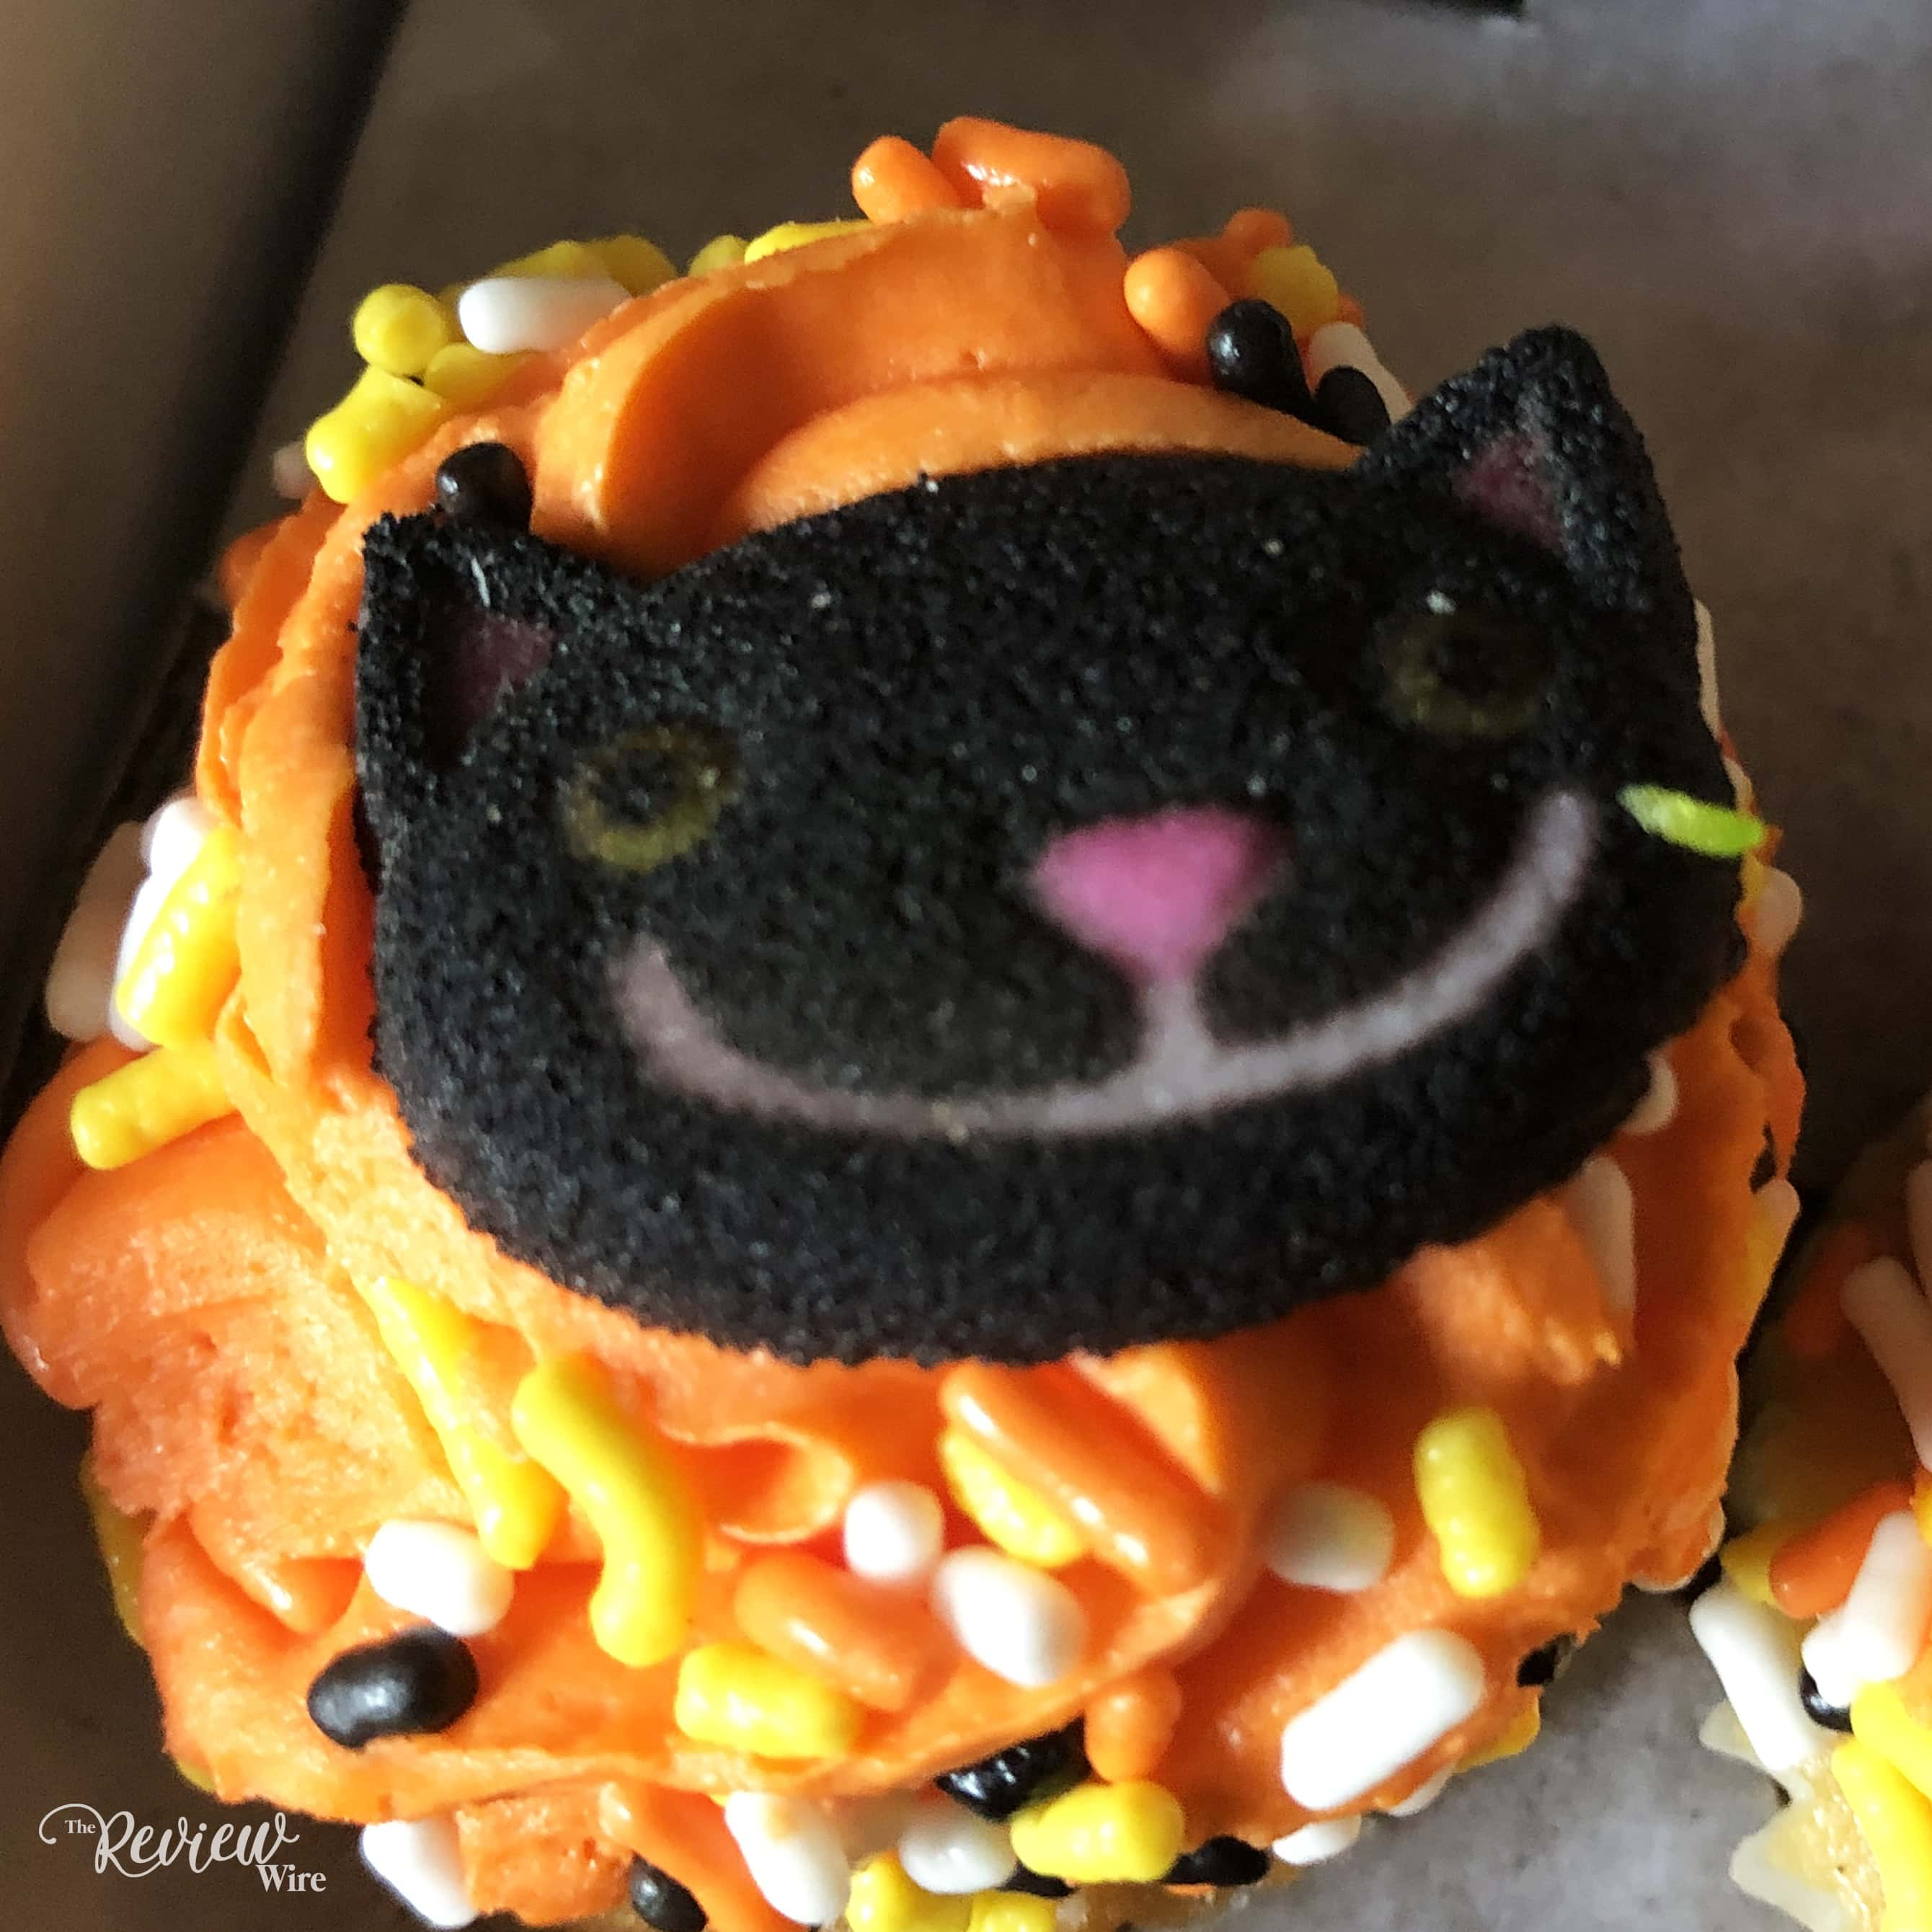 The Review Wire - Bake Me A Wish! Mini Halloween Cupcakes - Cat